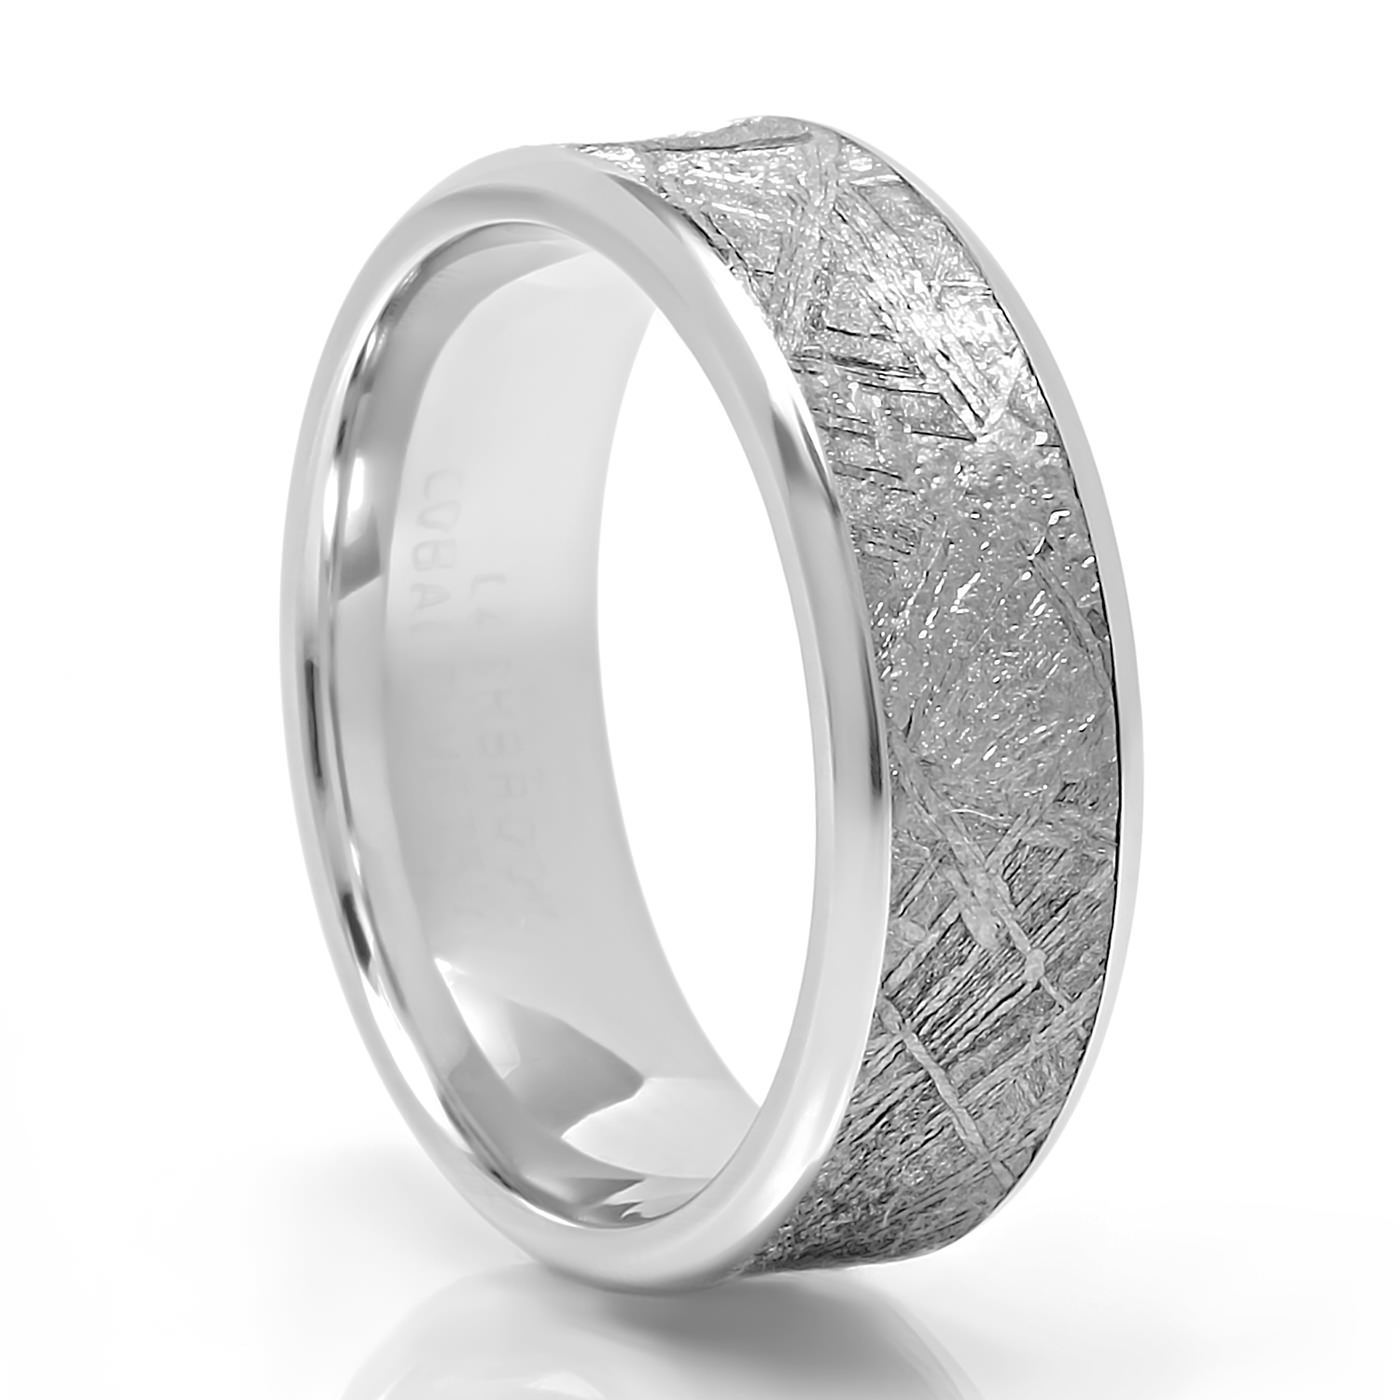 lashbrook fusion cobalt gibeon meteorite wedding band 7mm - Meteorite Wedding Ring